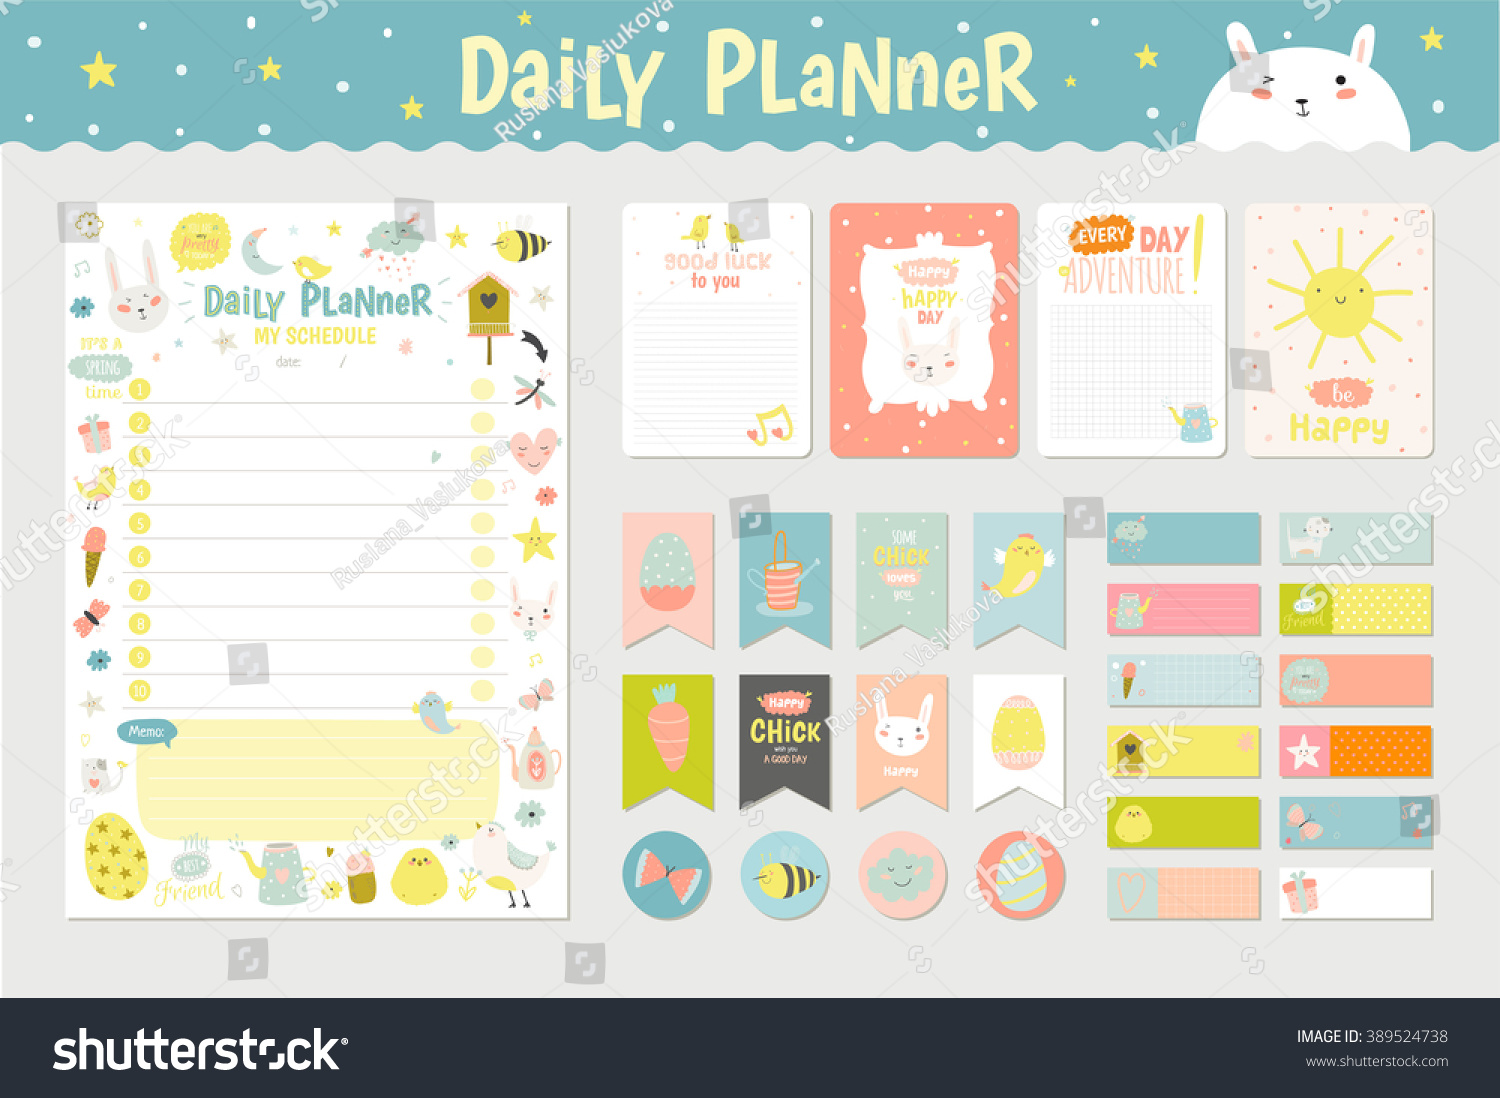 Cute Calendar Illustration : Cute calendar daily planner template stock vector